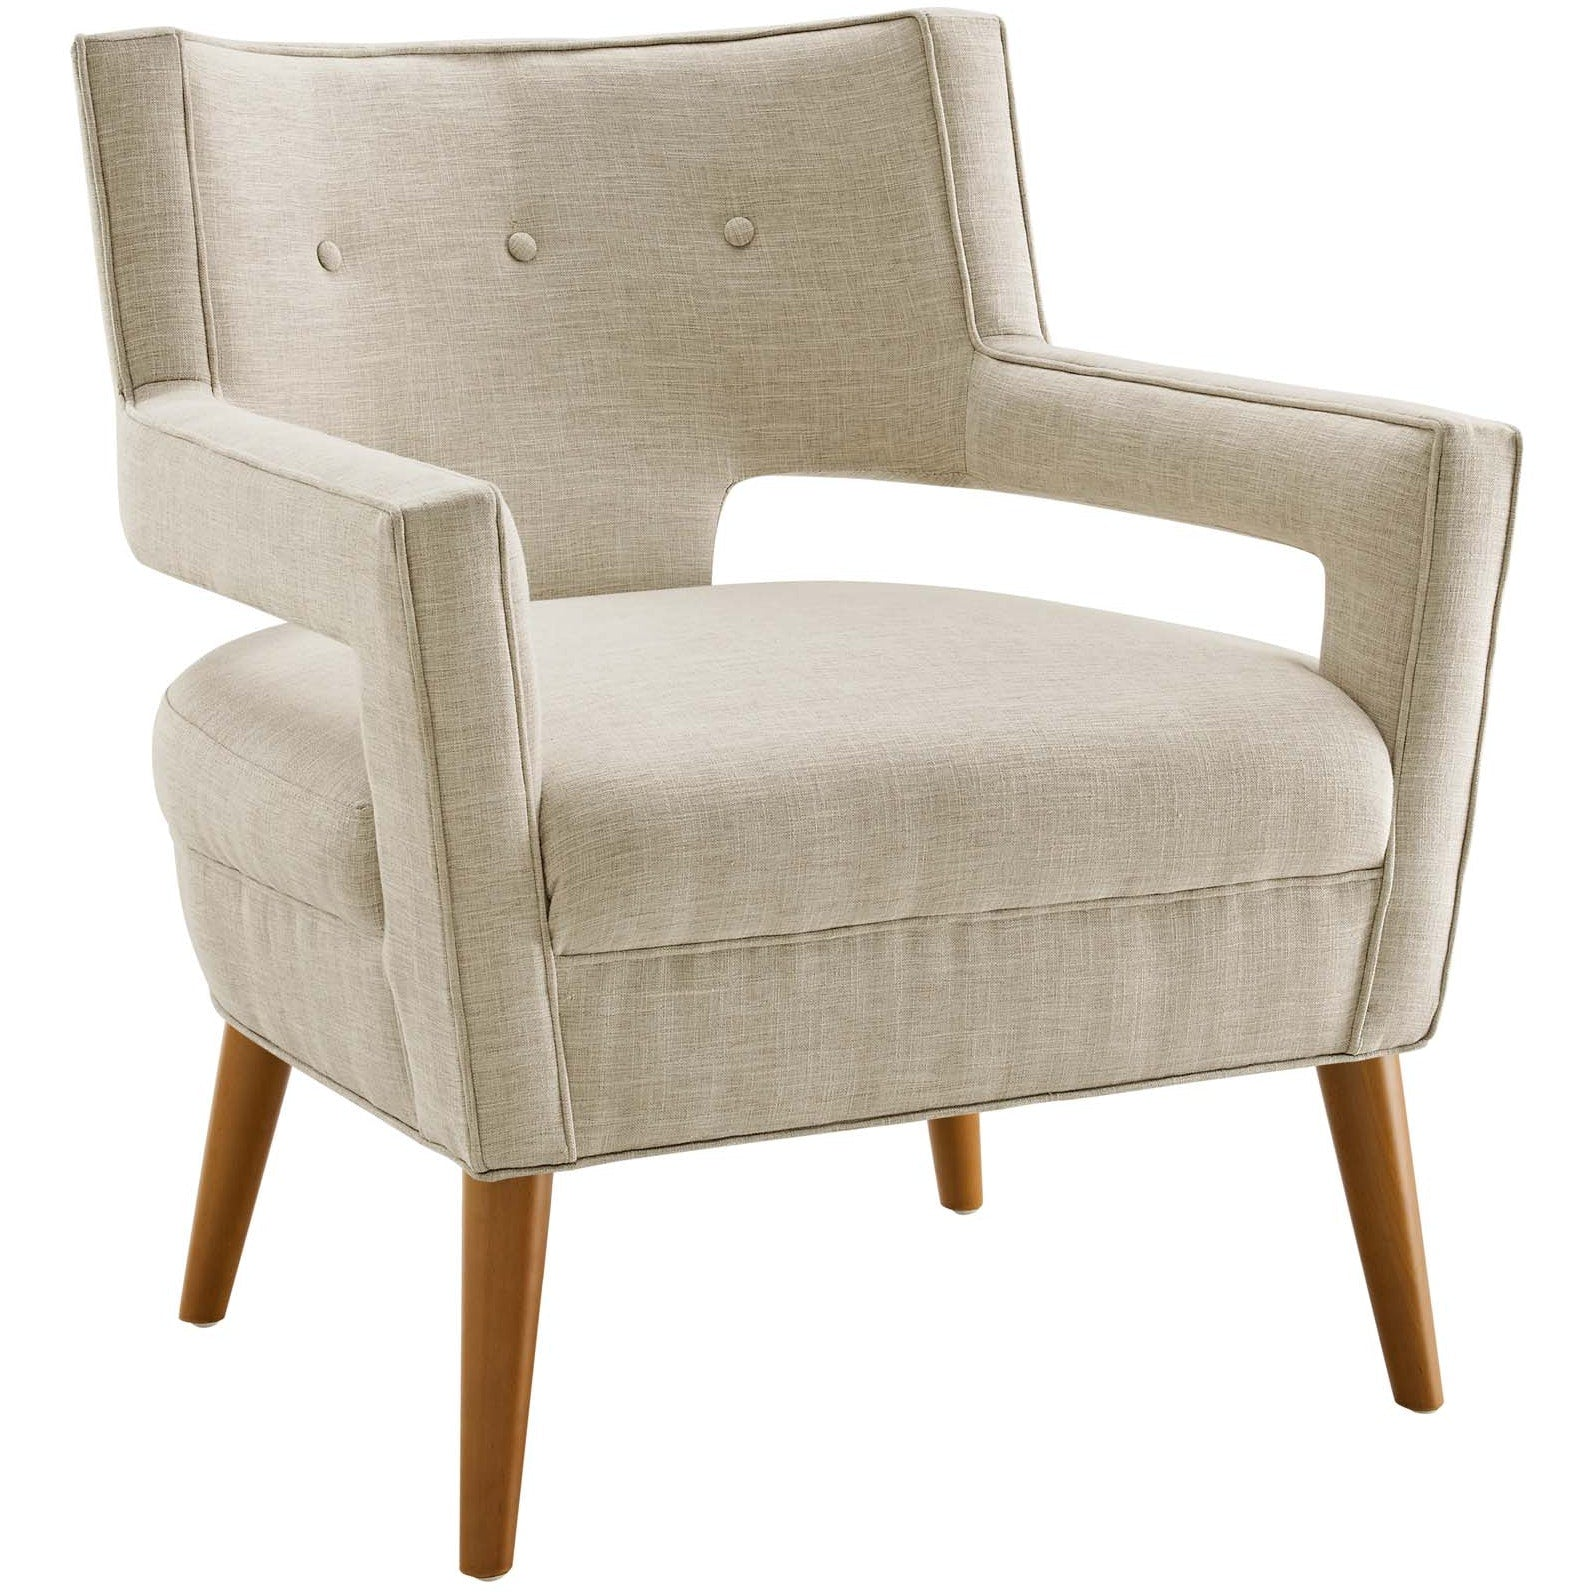 Sheer Upholstered Fabric Armchair - Sand